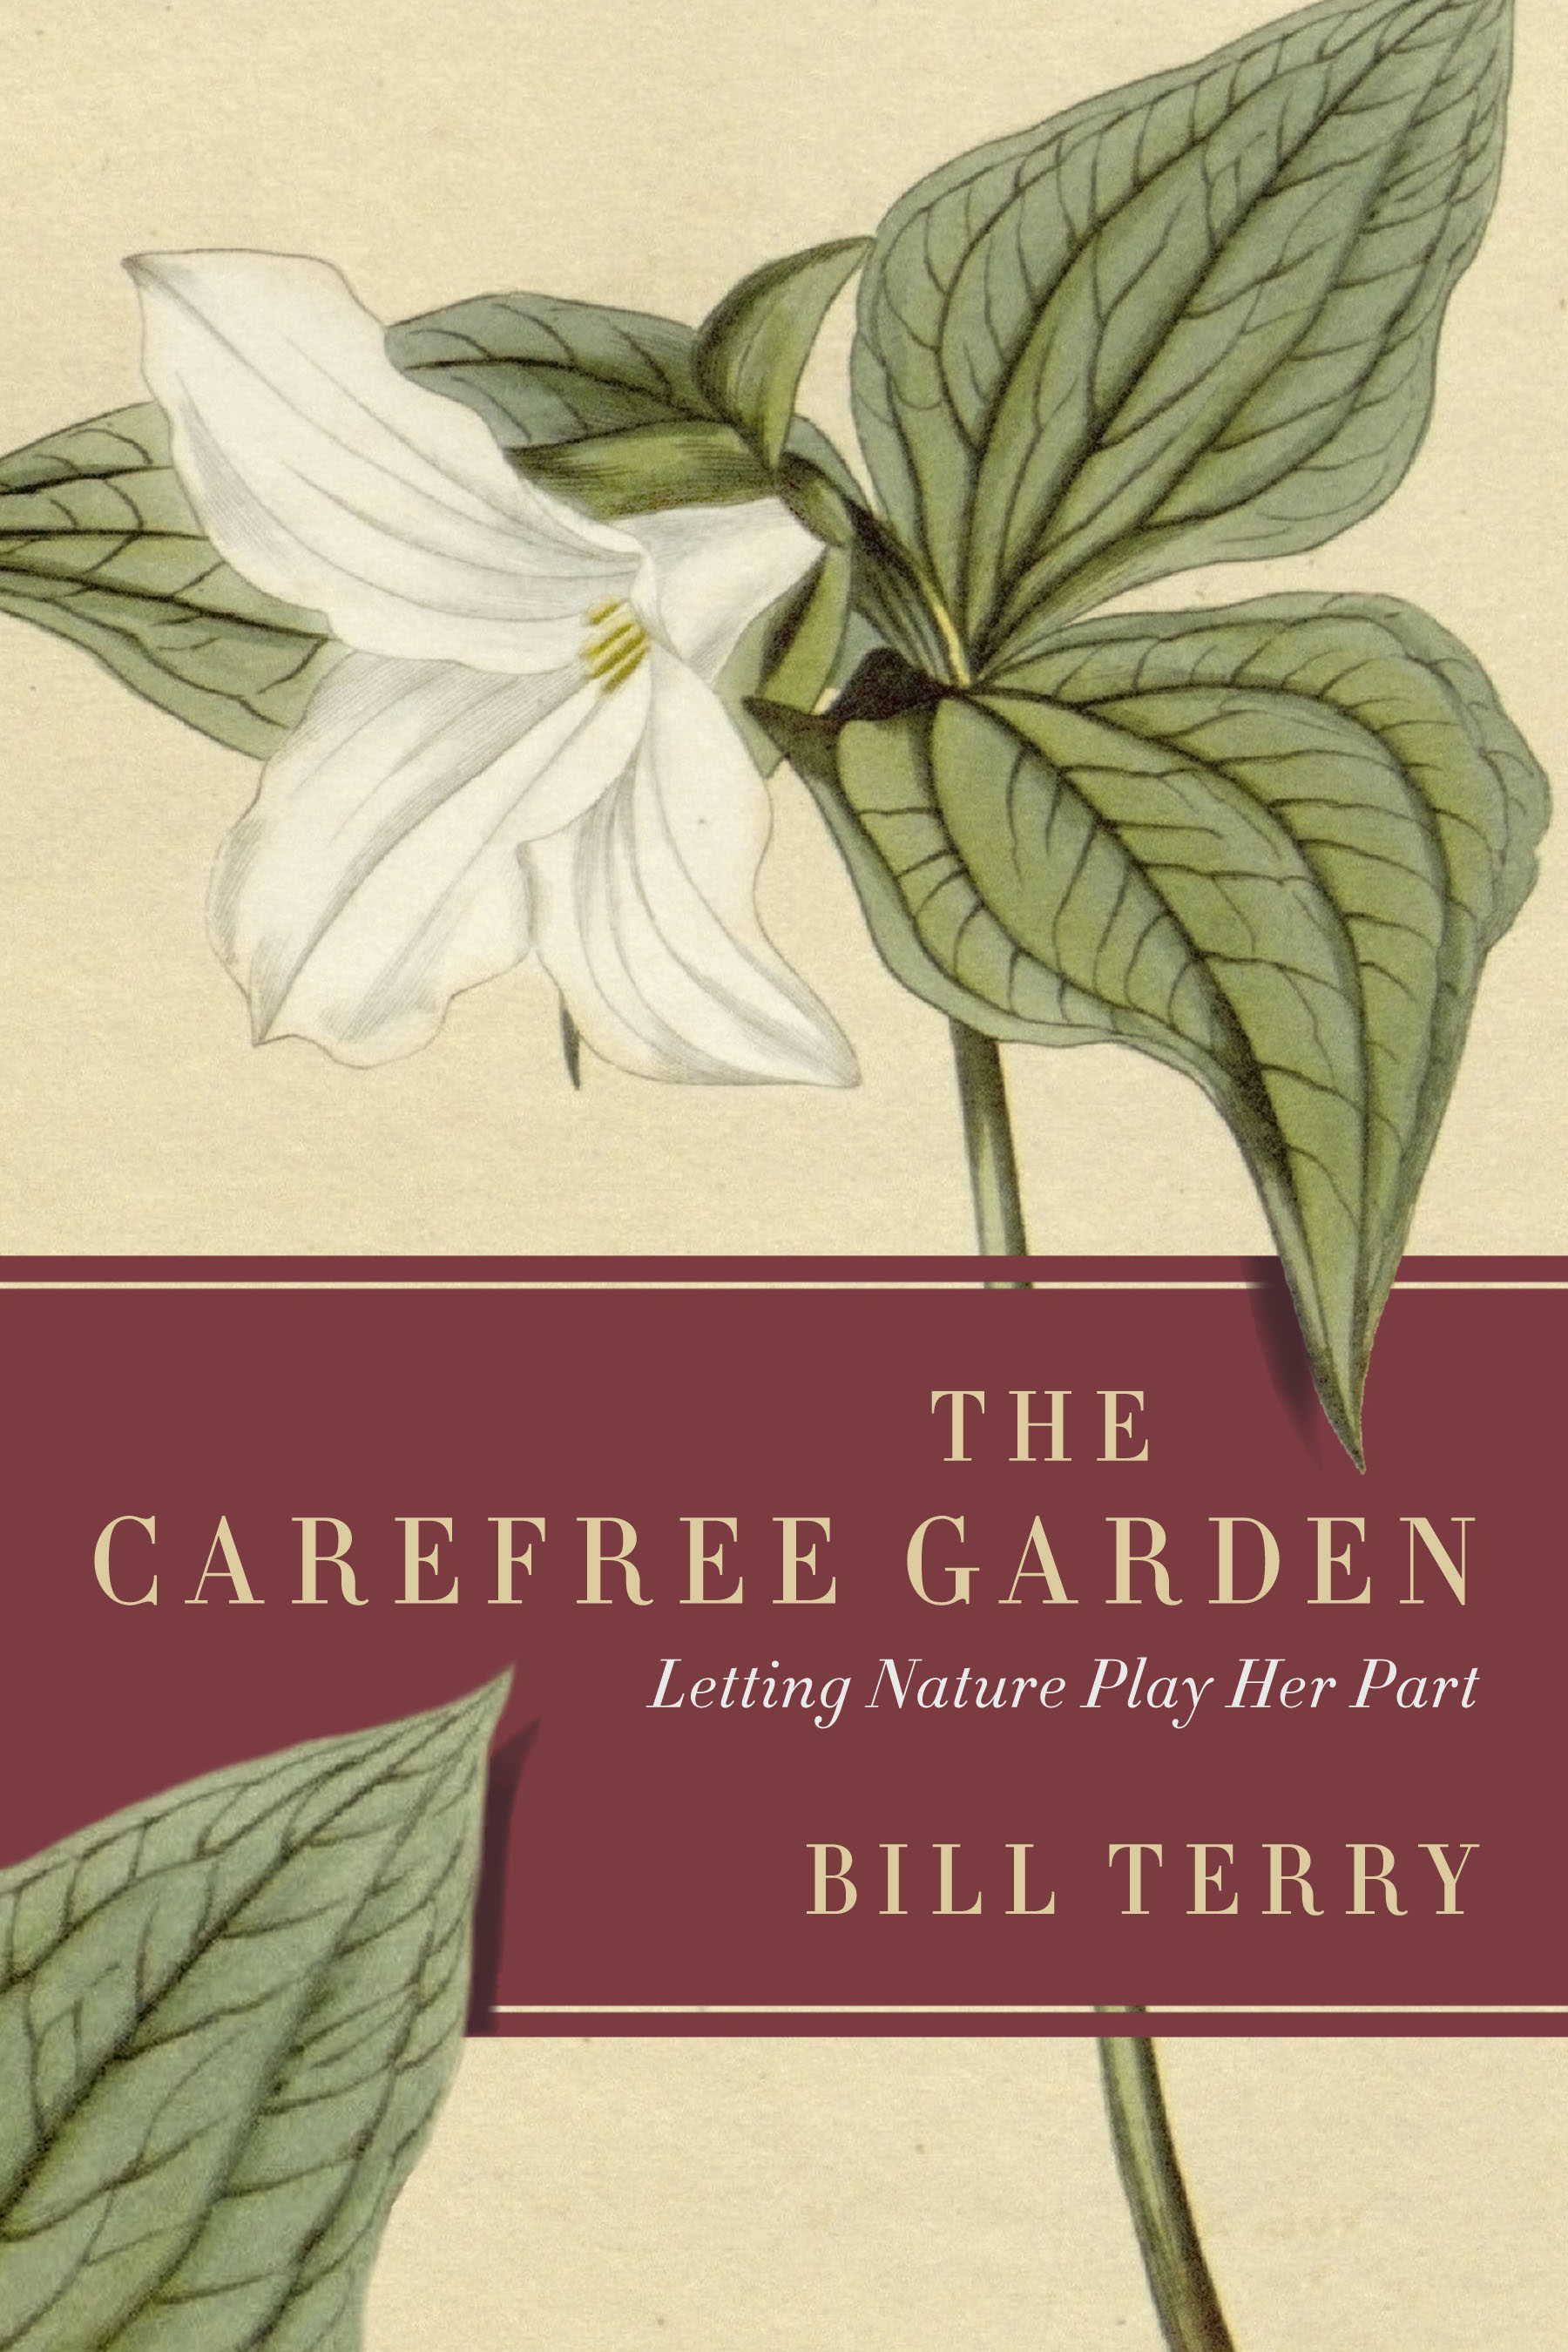 The Carefree Garden